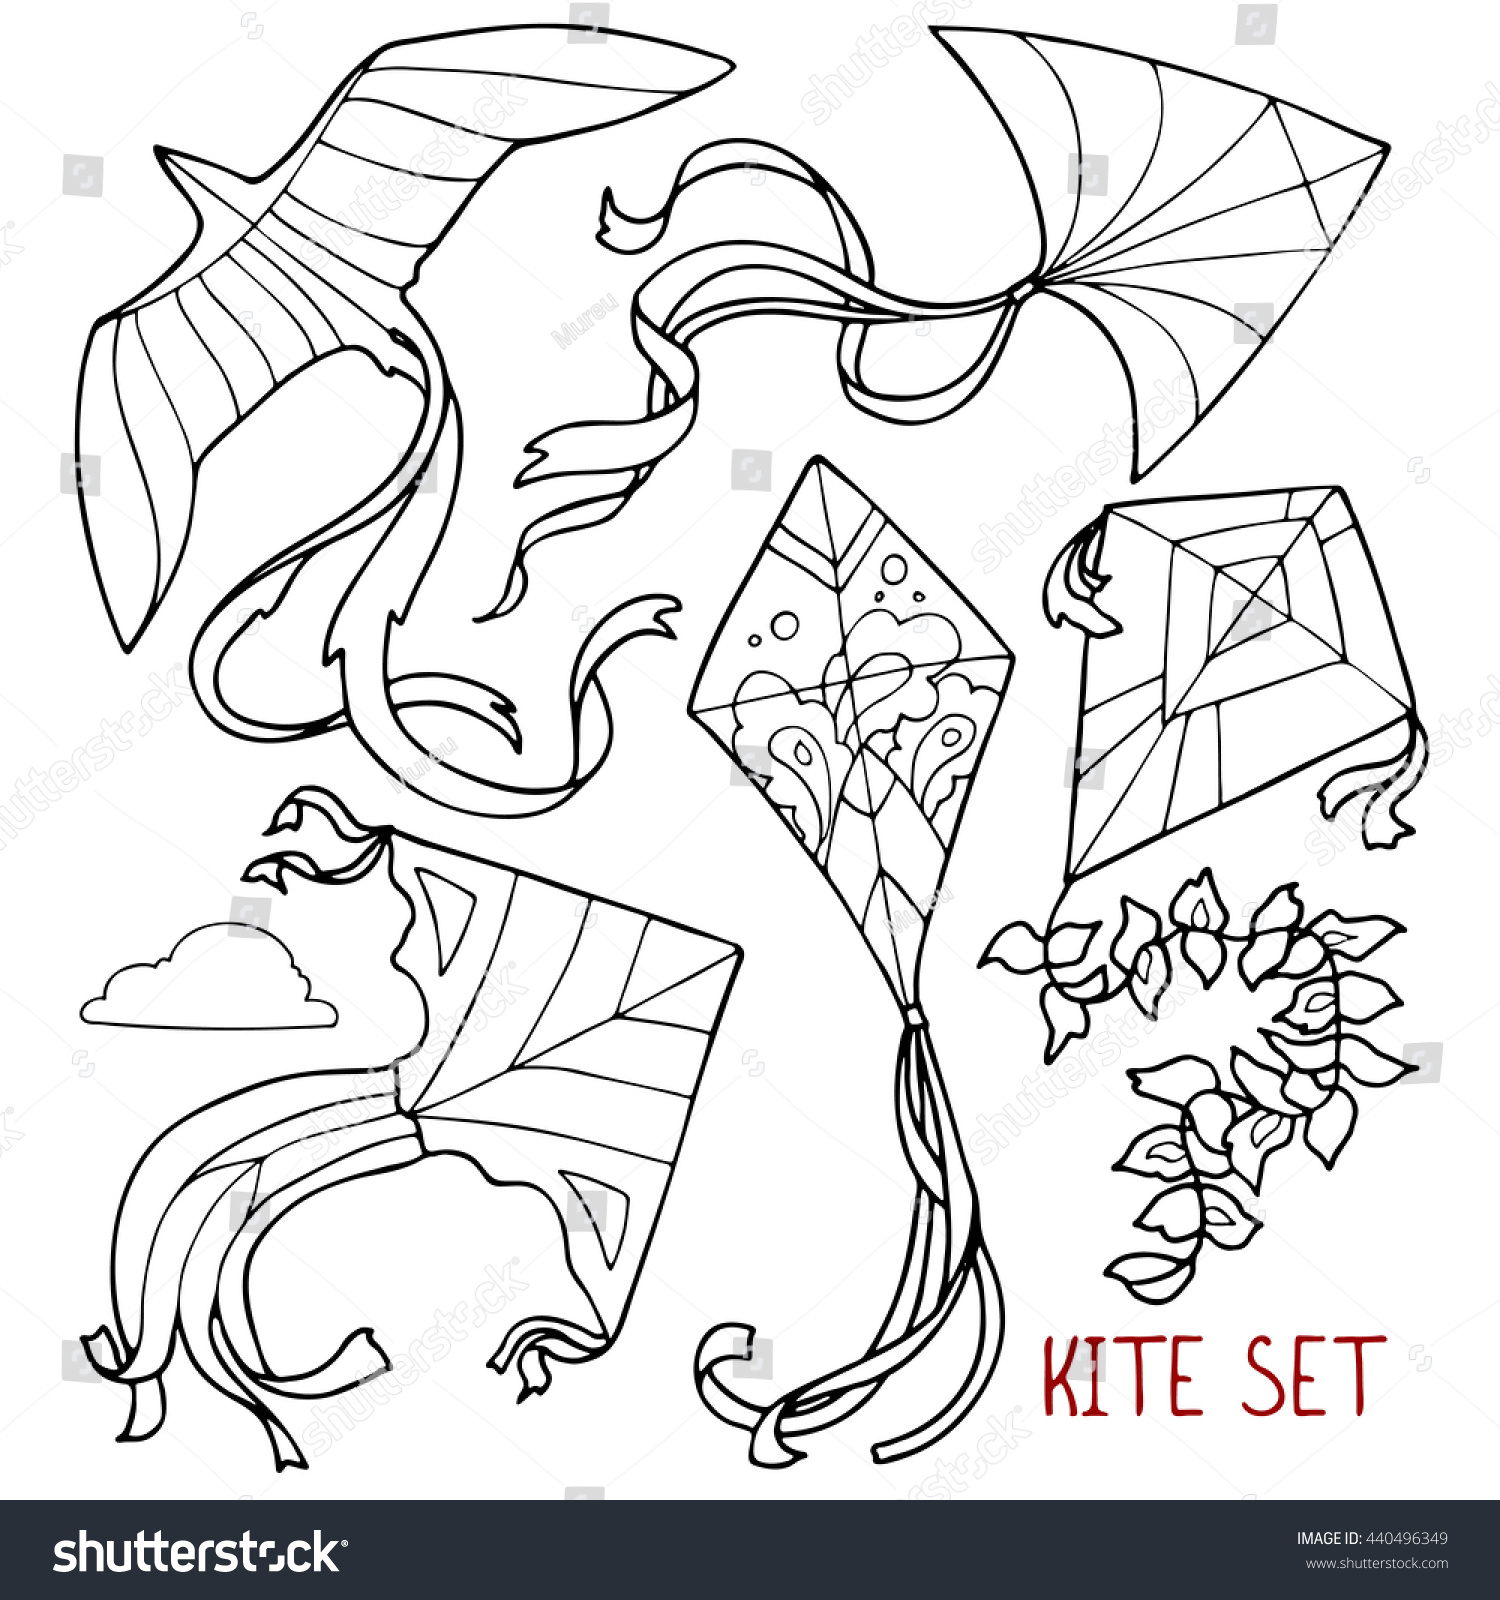 Line Drawing Kite : Kite set outline drawings hand stock vector